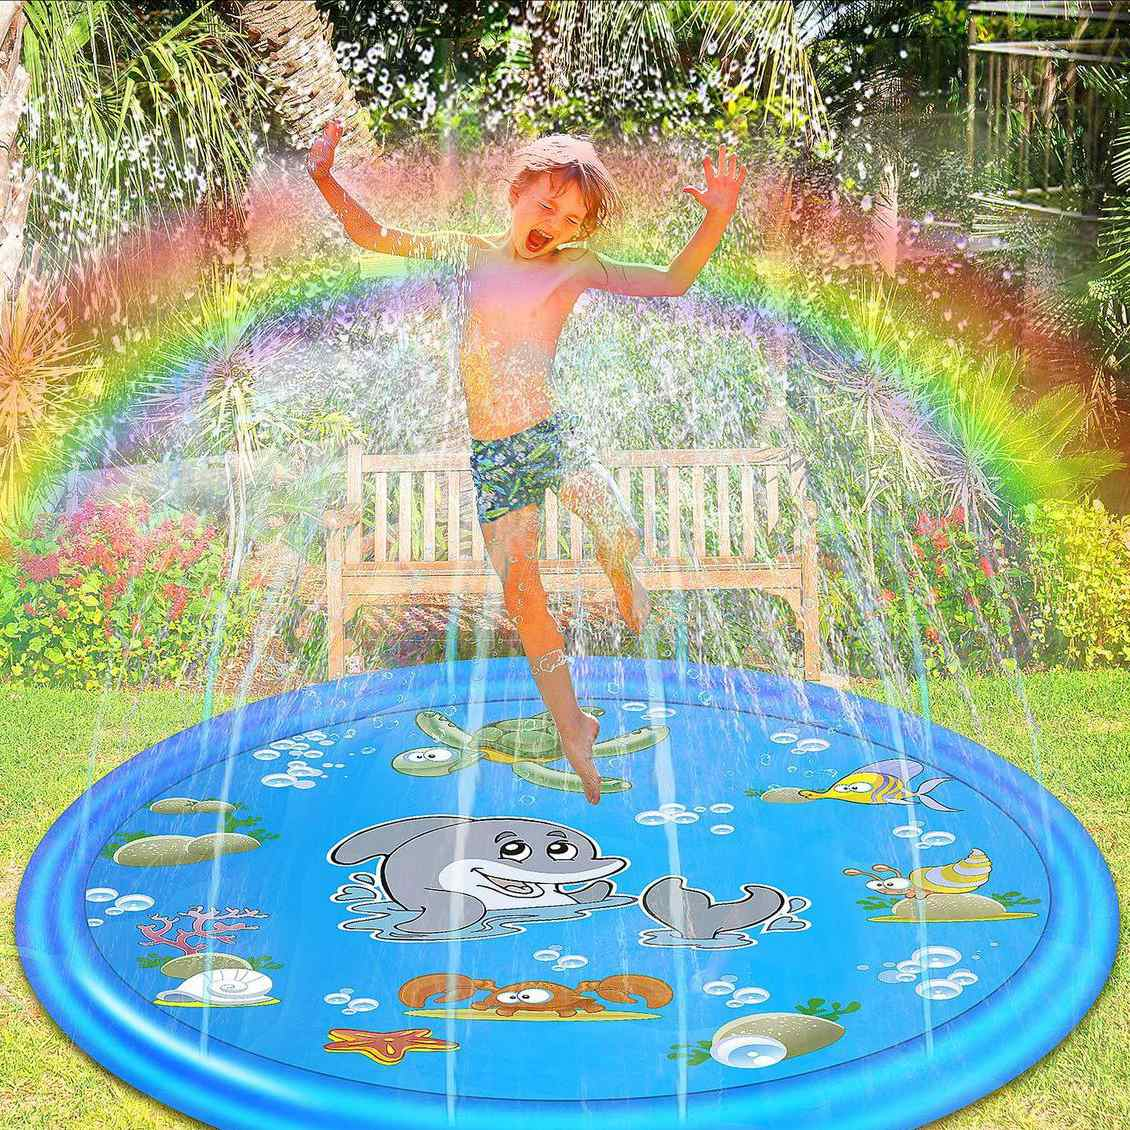 172cm Round Kid Inflatable Splash Play Pool Mini Spray Swimming Pool Fun Water Playing Sprinkler Mat Yard Outdoor Summer PVC